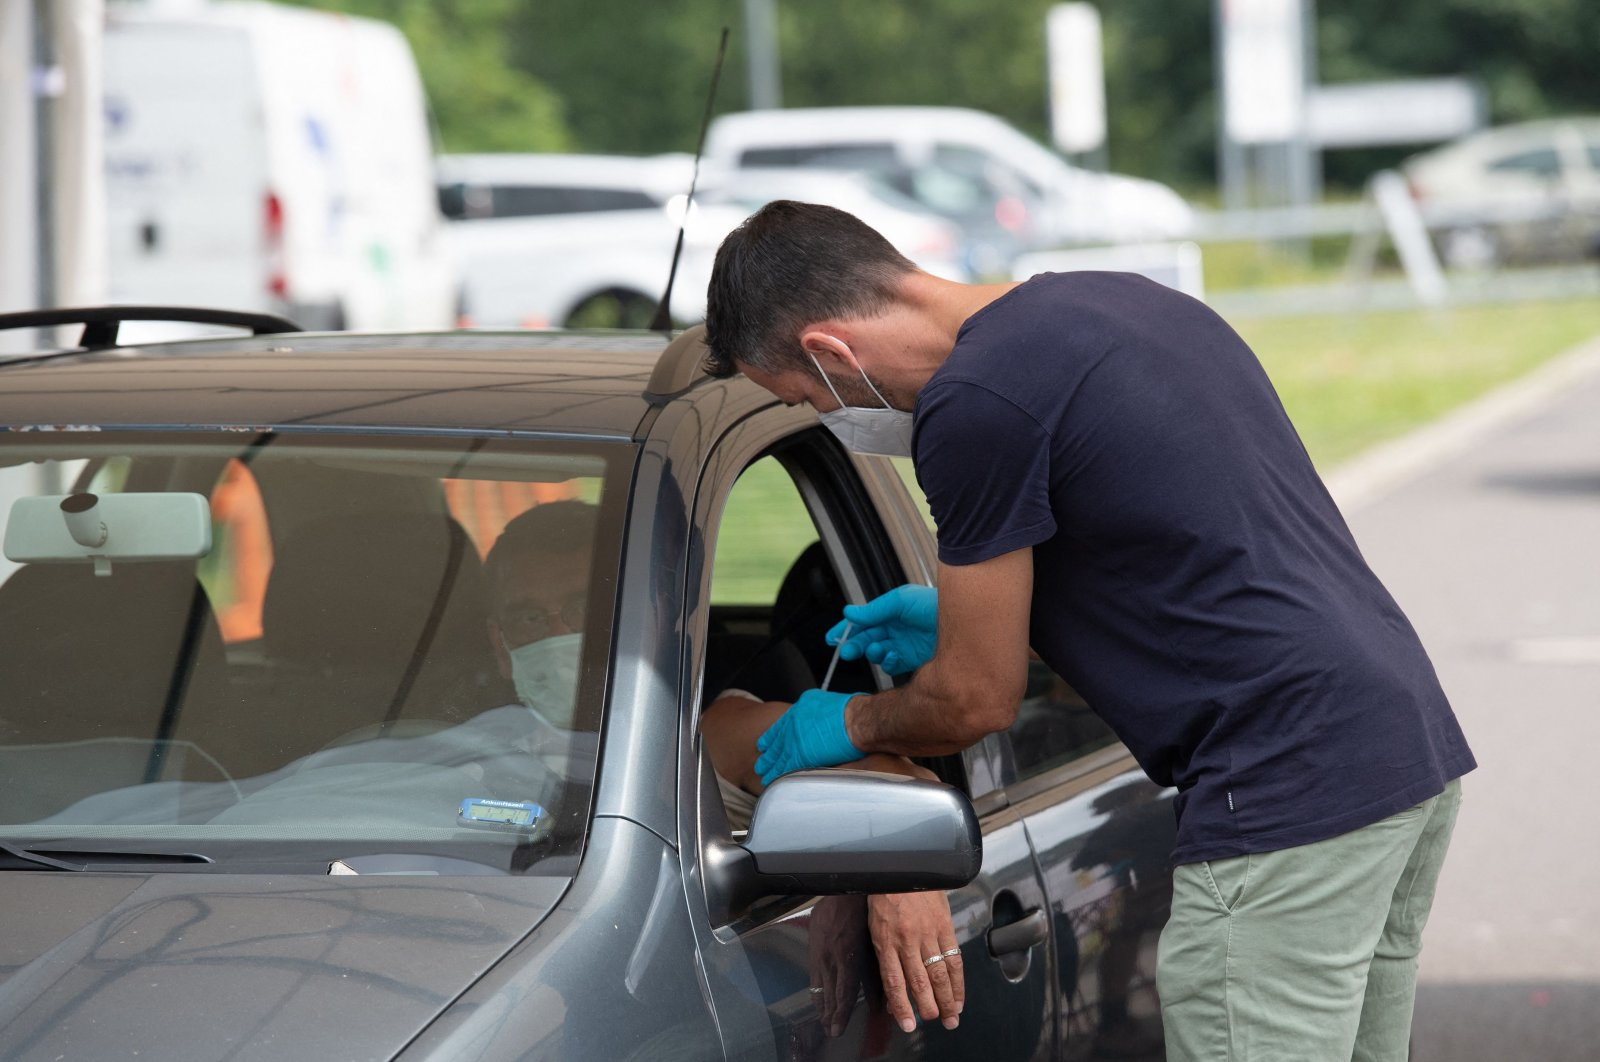 A man is vaccinated in his car at Berlin's first drive-thru vaccination center against the COVID-19, Berlin, Germany, July 17, 2021. (AFP Photo)